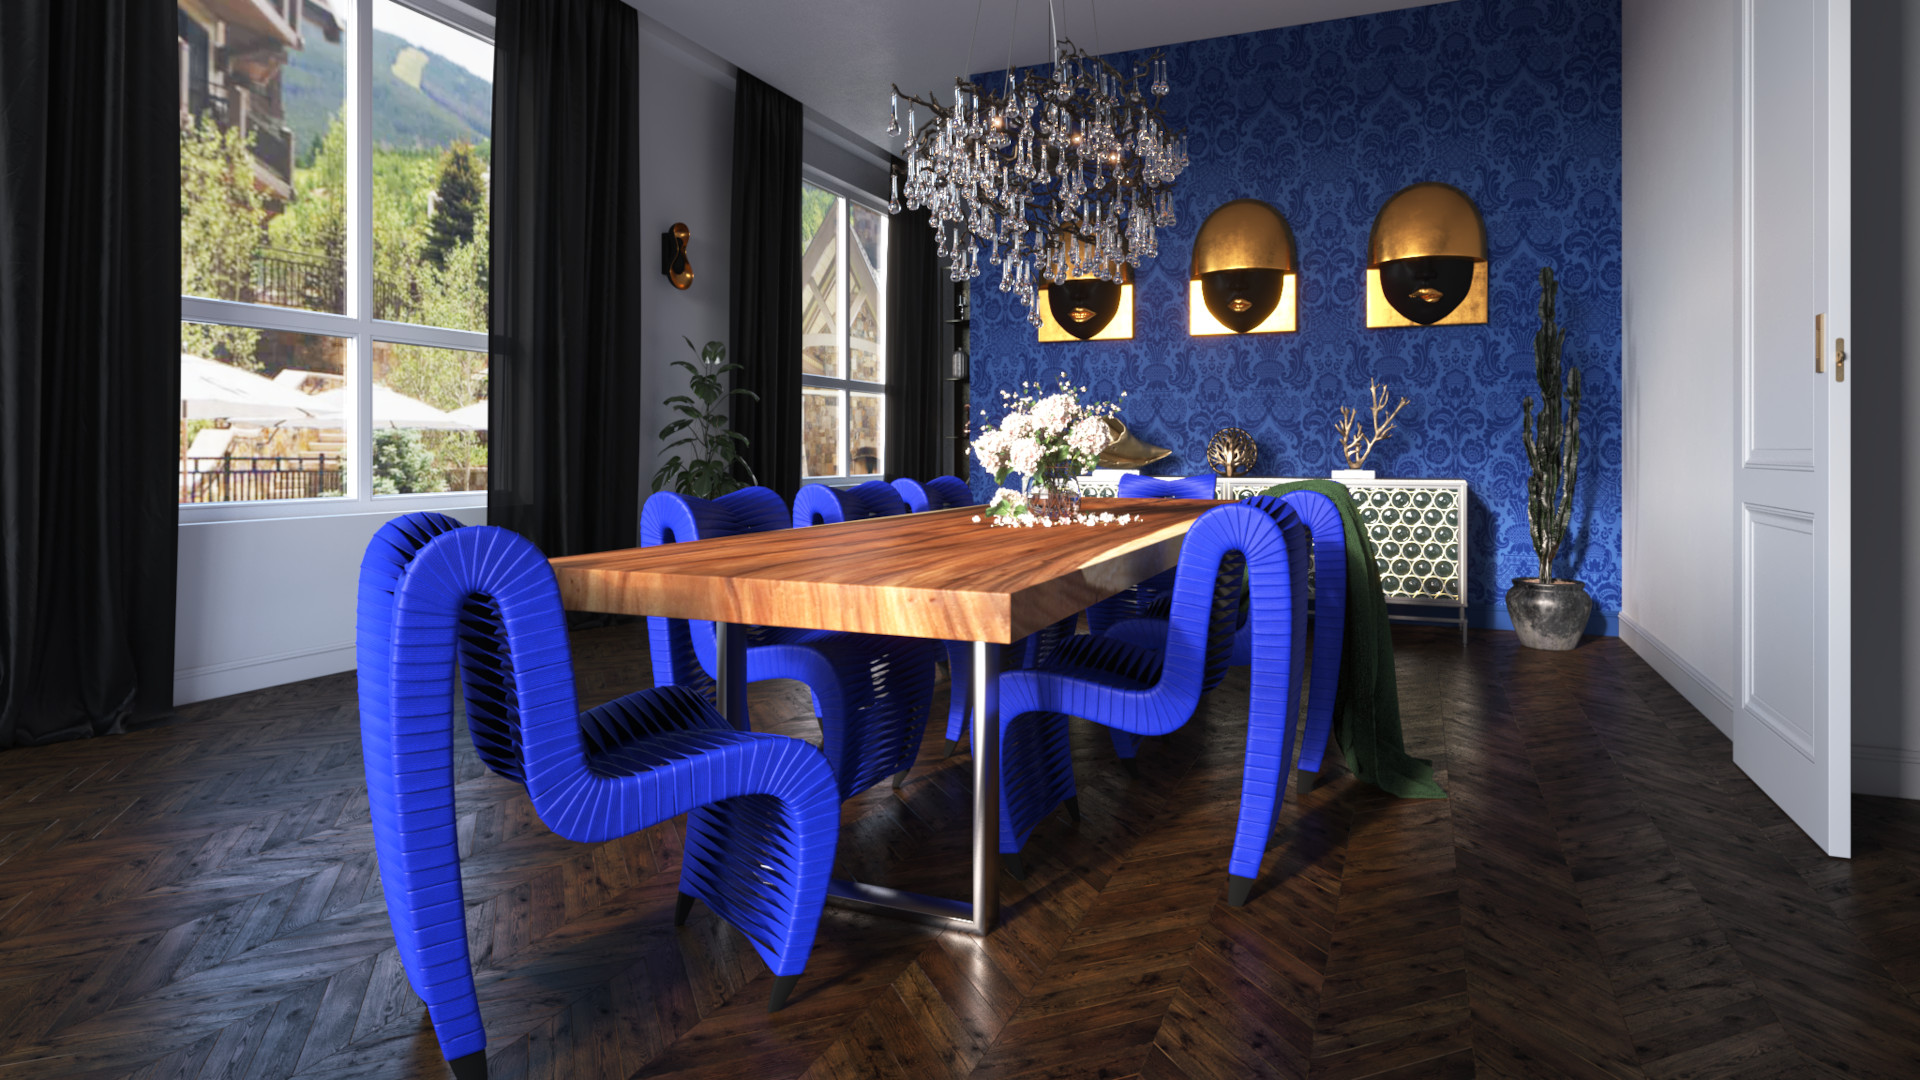 Luxury Dining Room With Natural Wood Table And Blue Seat Belt Dining Chairs